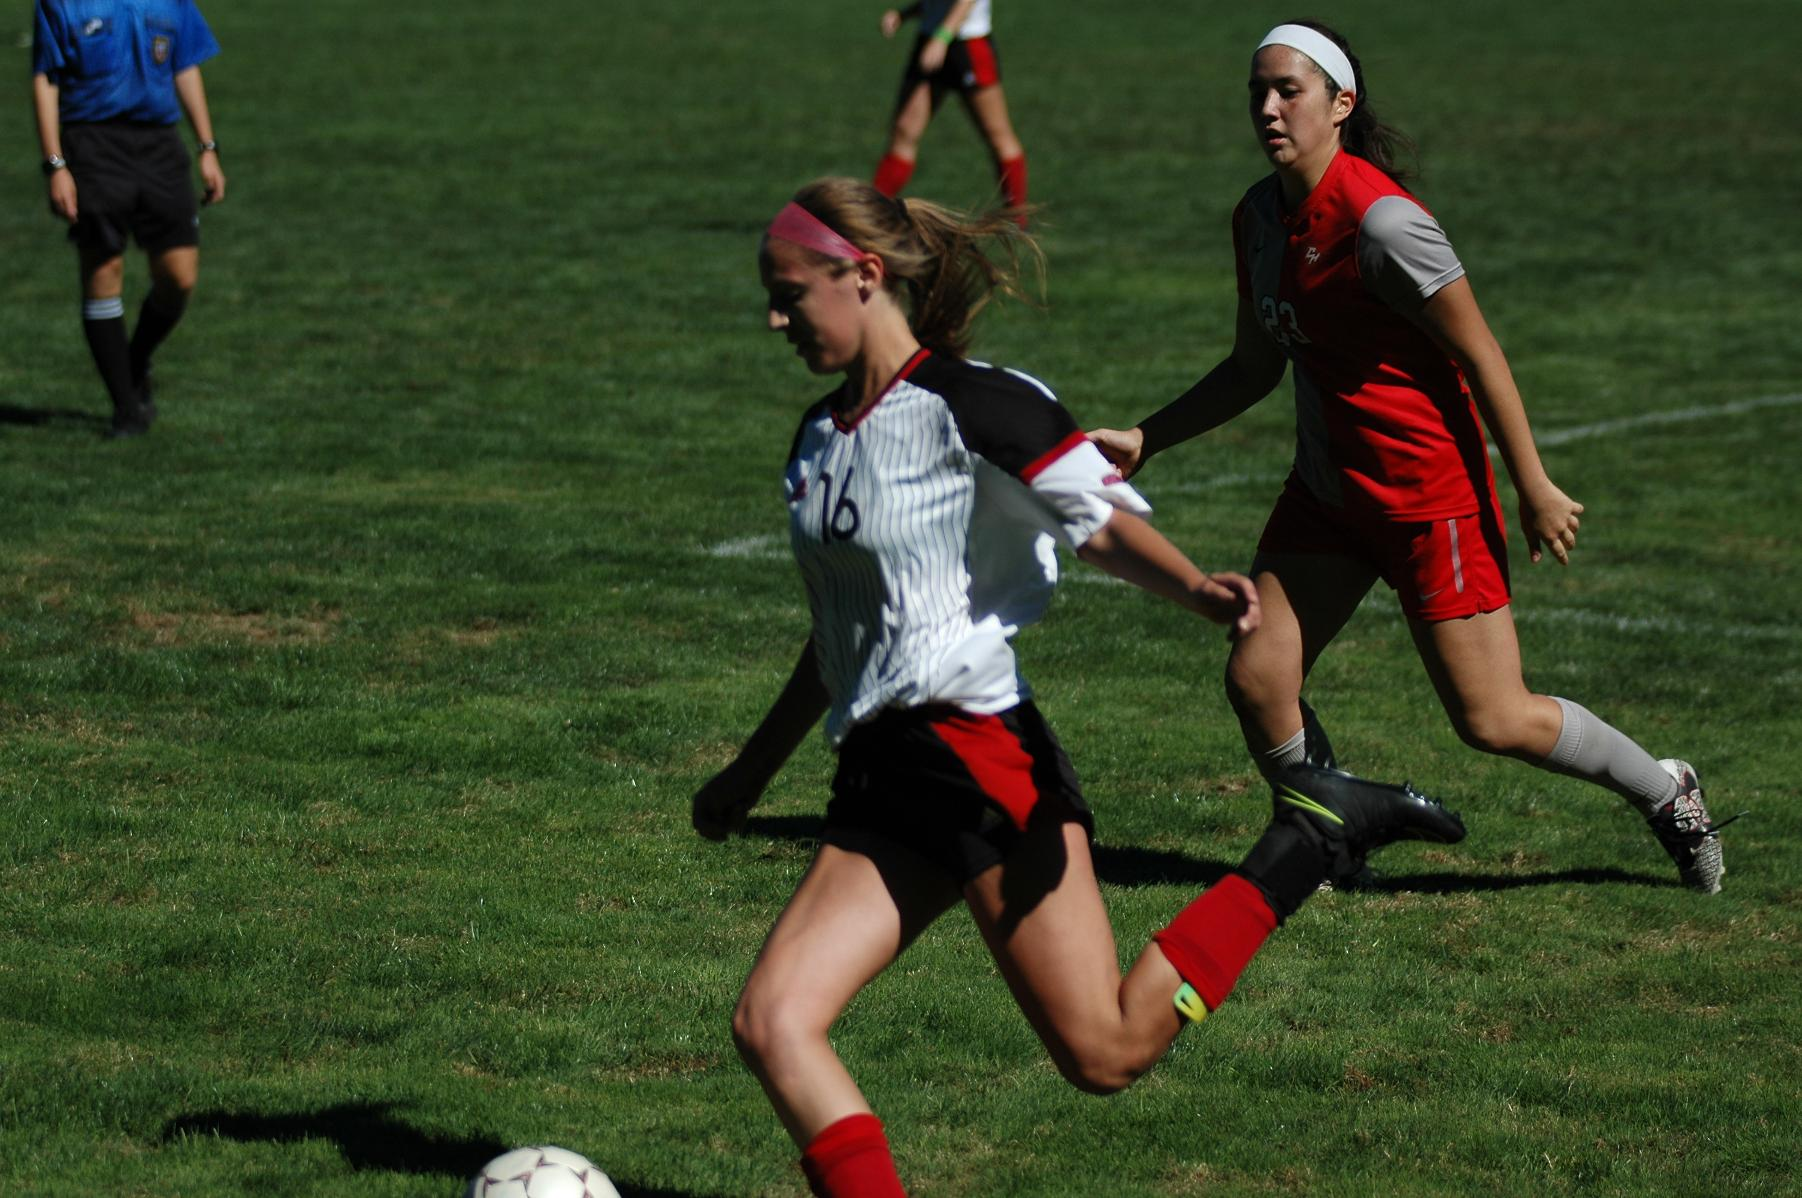 PENALTY KICK GOAL LIFTS LADY CHARGERS OVER EAGLES